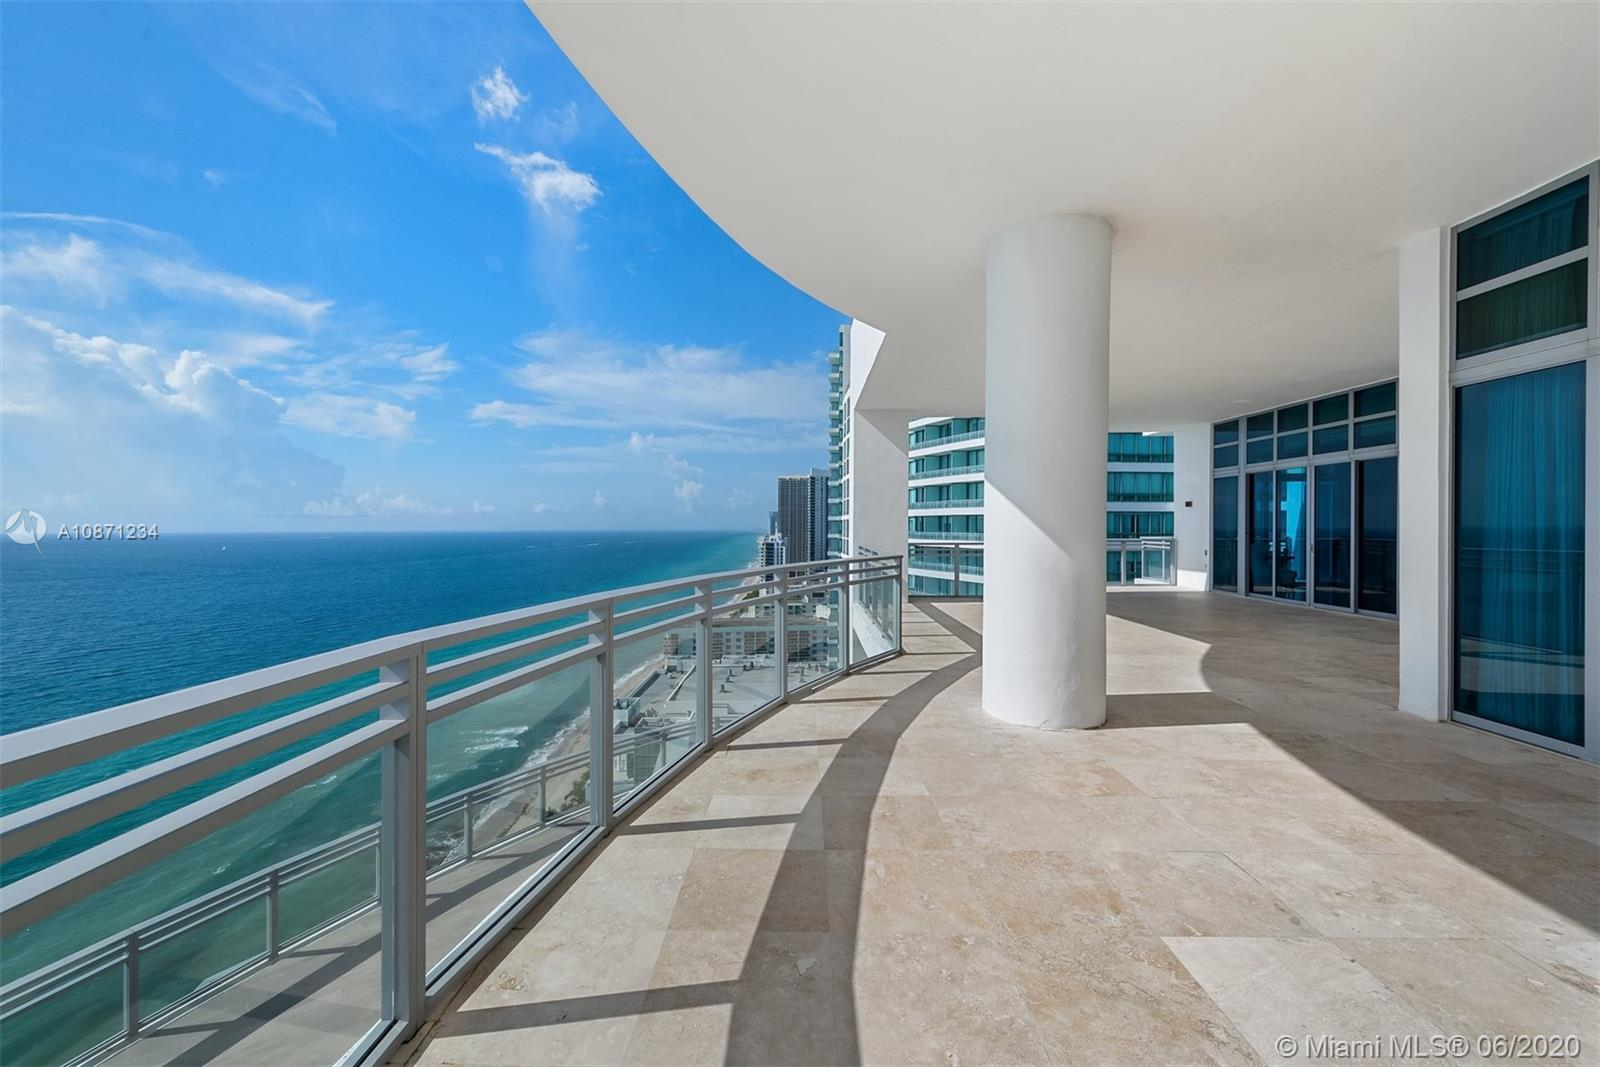 360 degree views, impressive terrace space, and an entire Penthouse floor. This unit features 7,861 SF and an additional 5,700 SF of outdoor private terrace space. PH2901 offers a private elevator entry, custom lighting, millwork & built-ins with a spacious flow-thru layout w/extended living, family & dining areas w/amazing views of downtown and direct ocean views. 6 bed with bathrooms in suite, 8.5 total bath. Private East facing terrace w direct ocean views that wrap around to the North facing downtown.  Expansive West facing terrace wraps around to the South with views of the sunsets, city skyline and beaches. Residents may enjoy the Diplomat Resort 6 restaurants, state-of-the-art Spa and Fitness Center, and other hotel services.